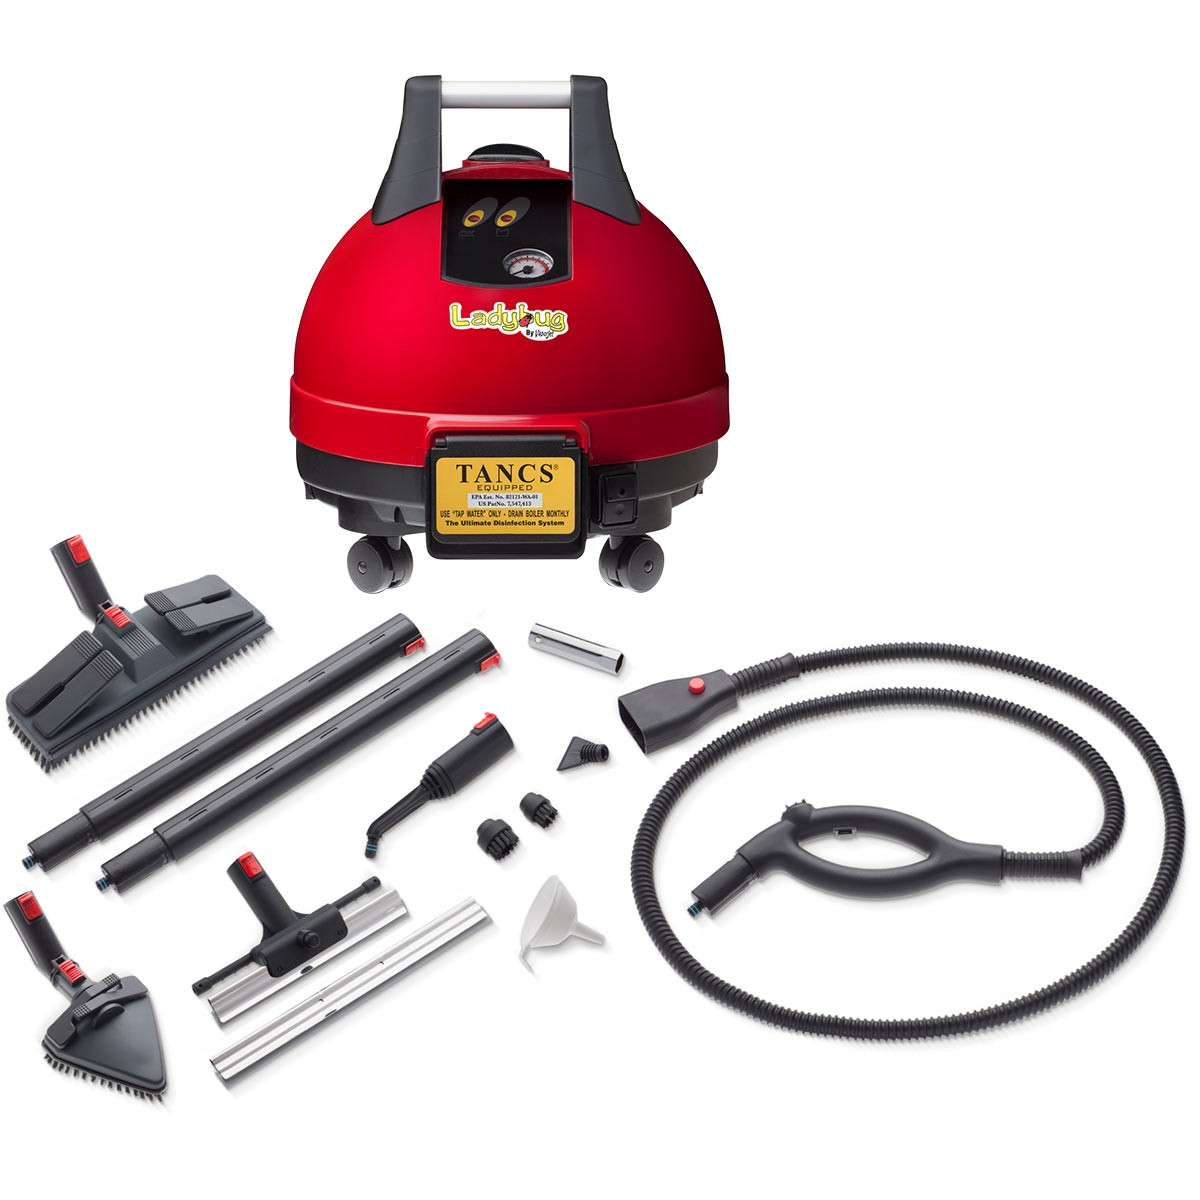 Ladybug 2200S comes with a standard accessory package